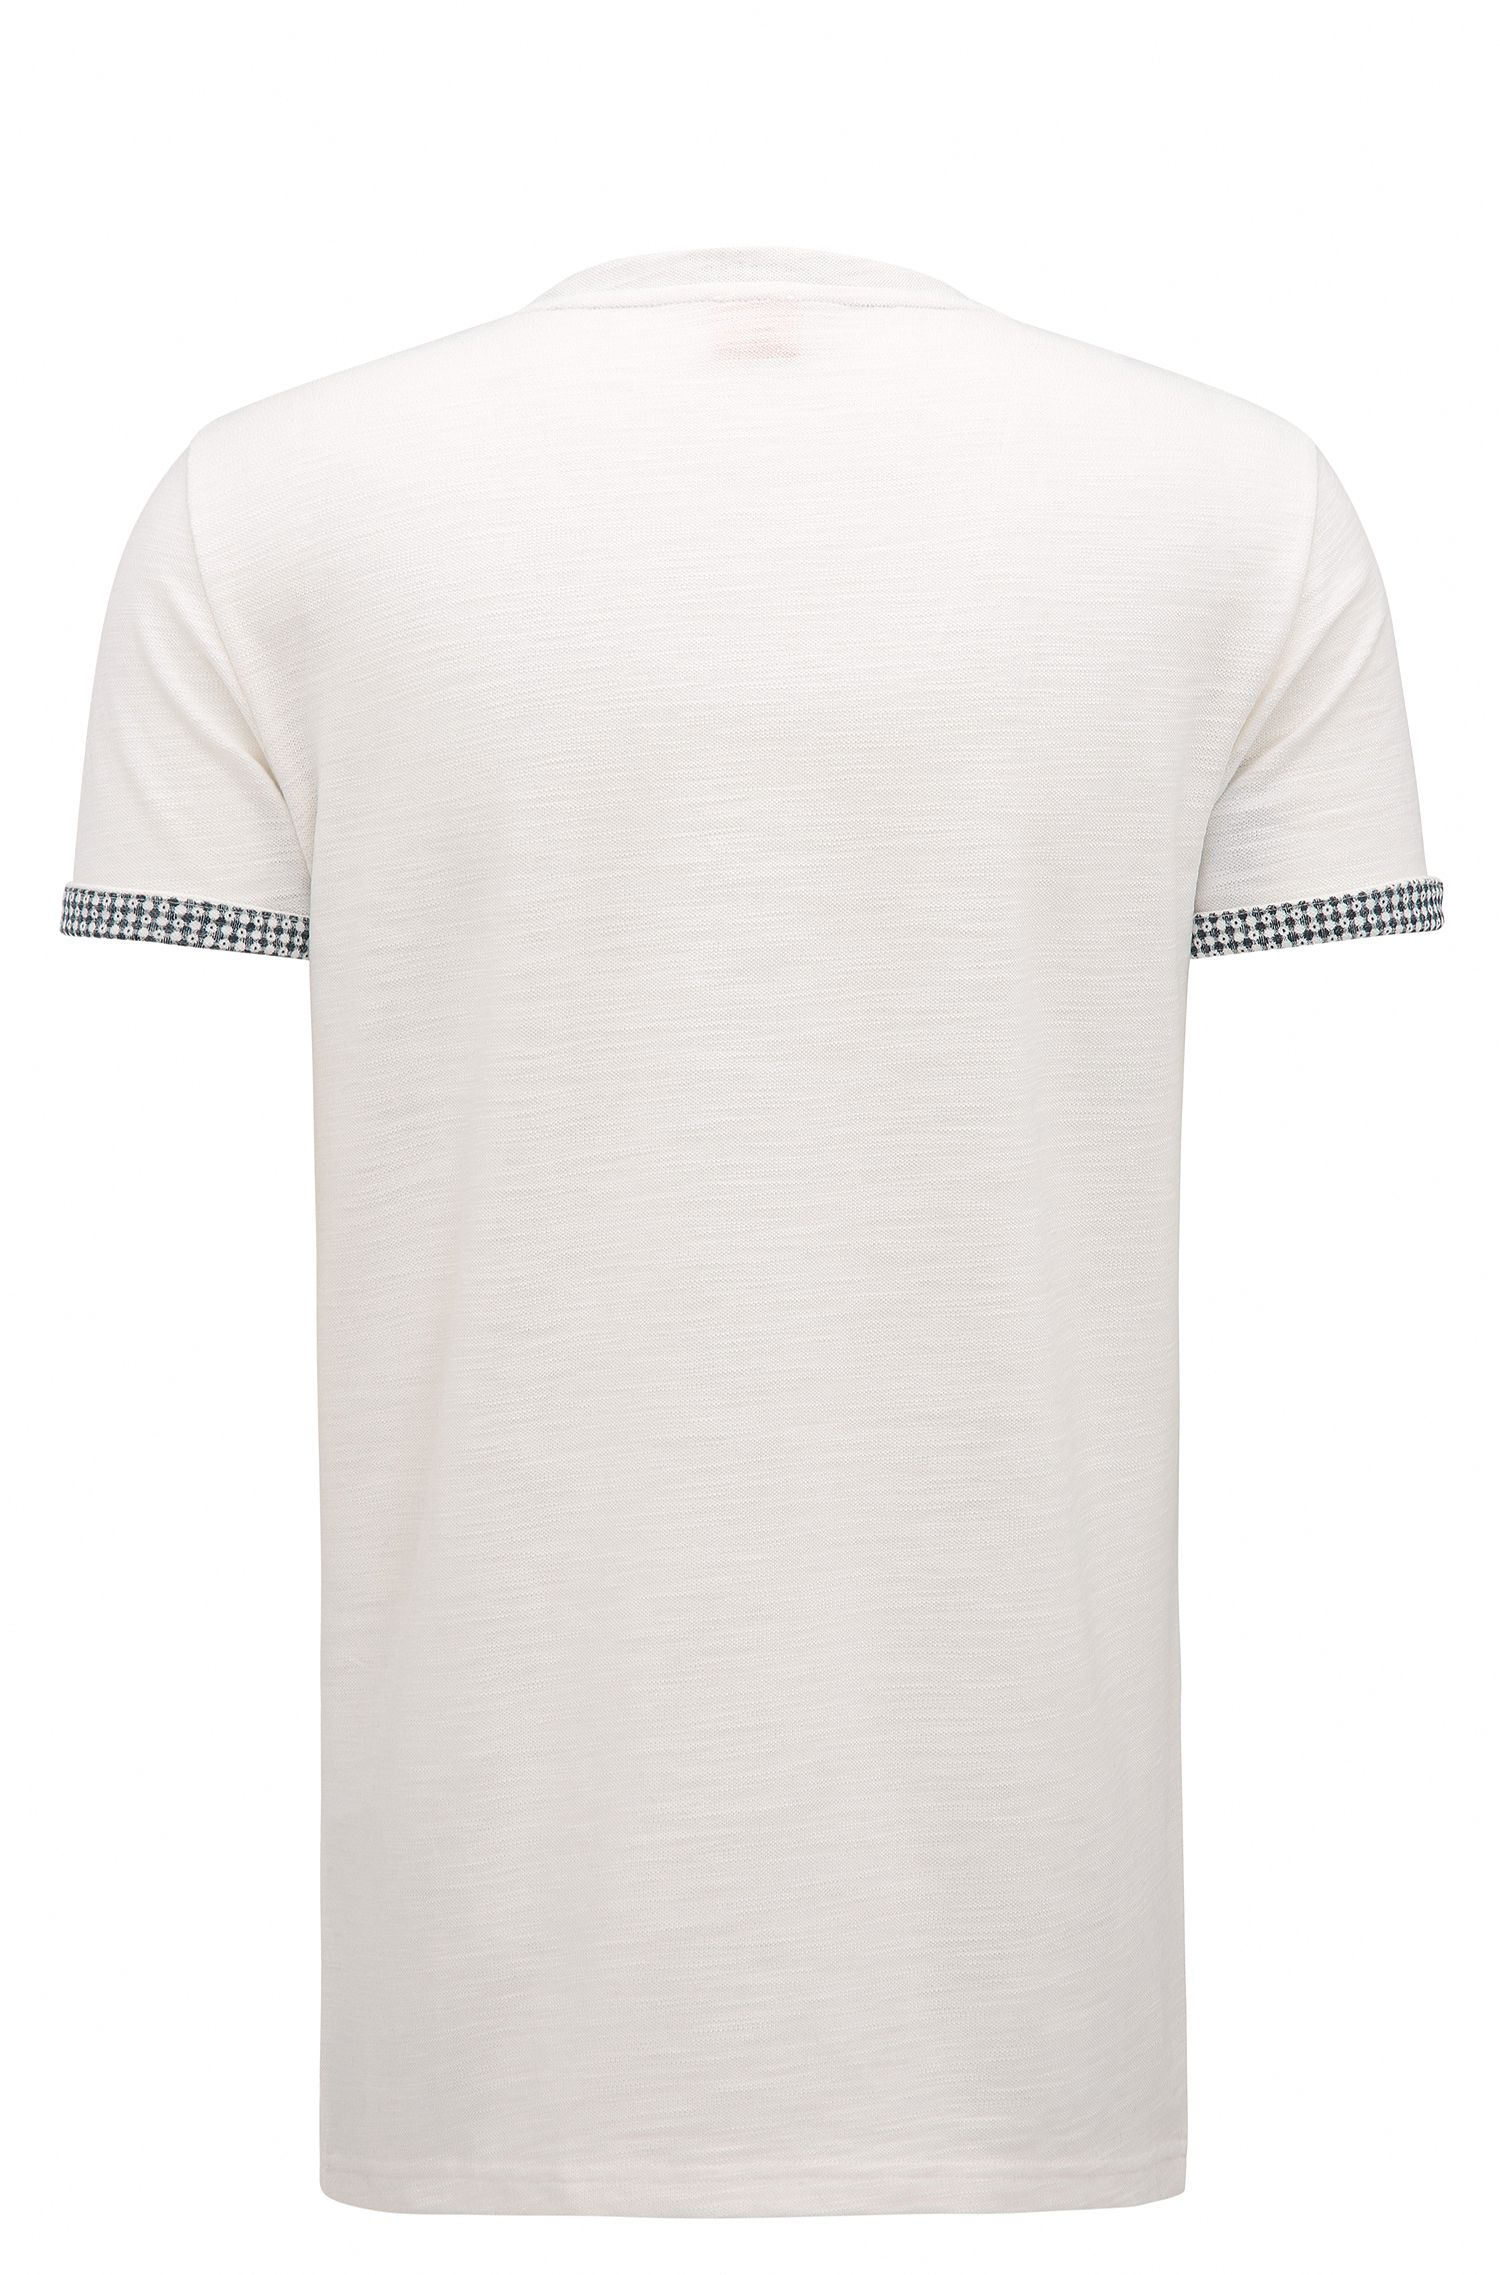 Cuffed Cotton Blend T-Shirt | Tile